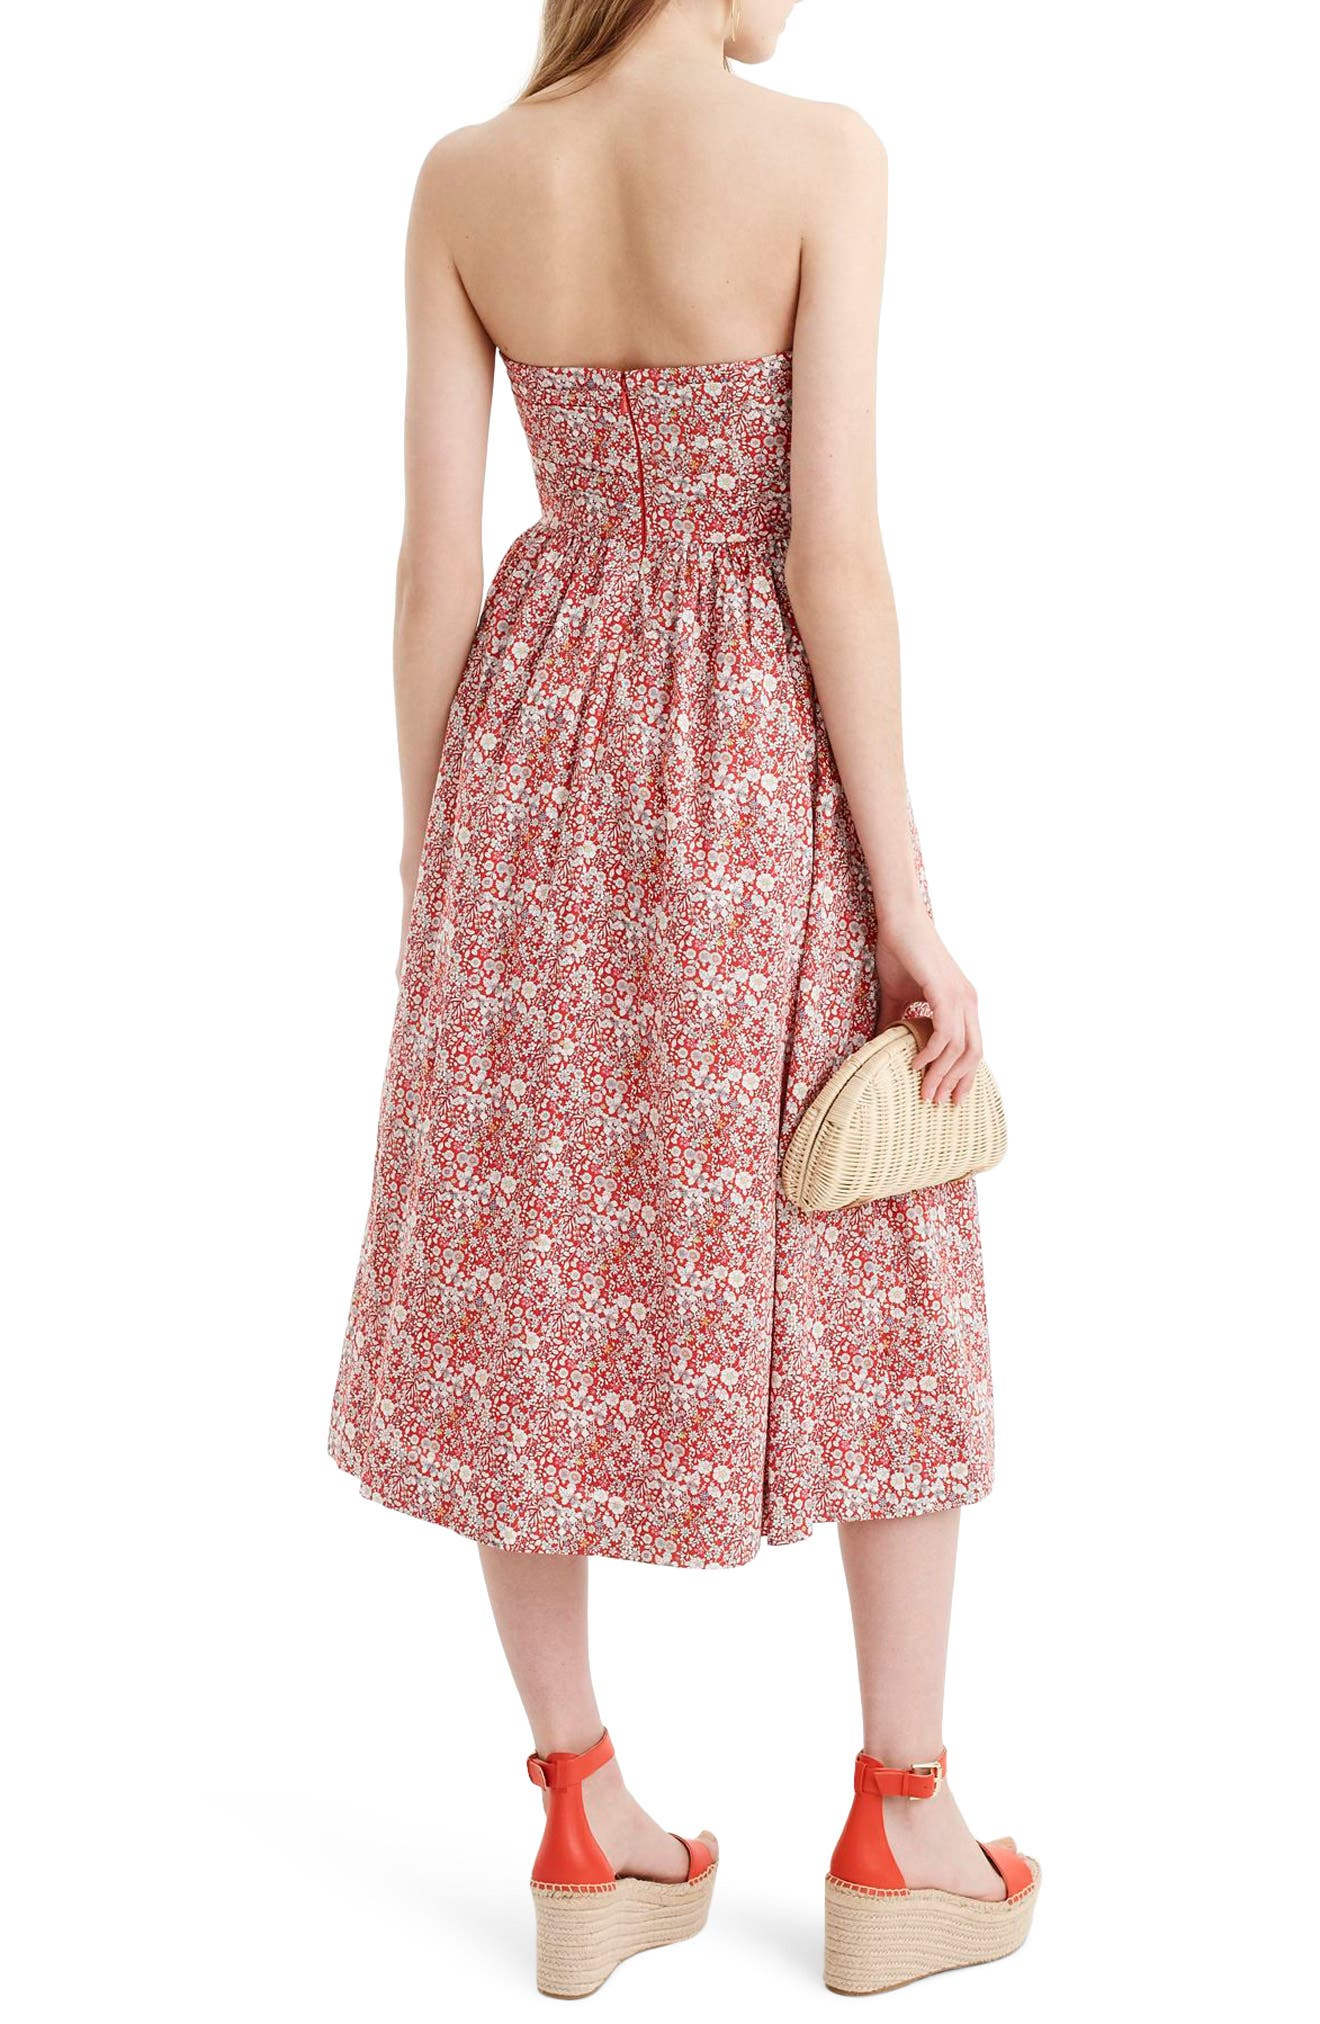 Liberty Tie Front Strapless Dress,                             Alternate thumbnail 2, color,                             Cherry Multi